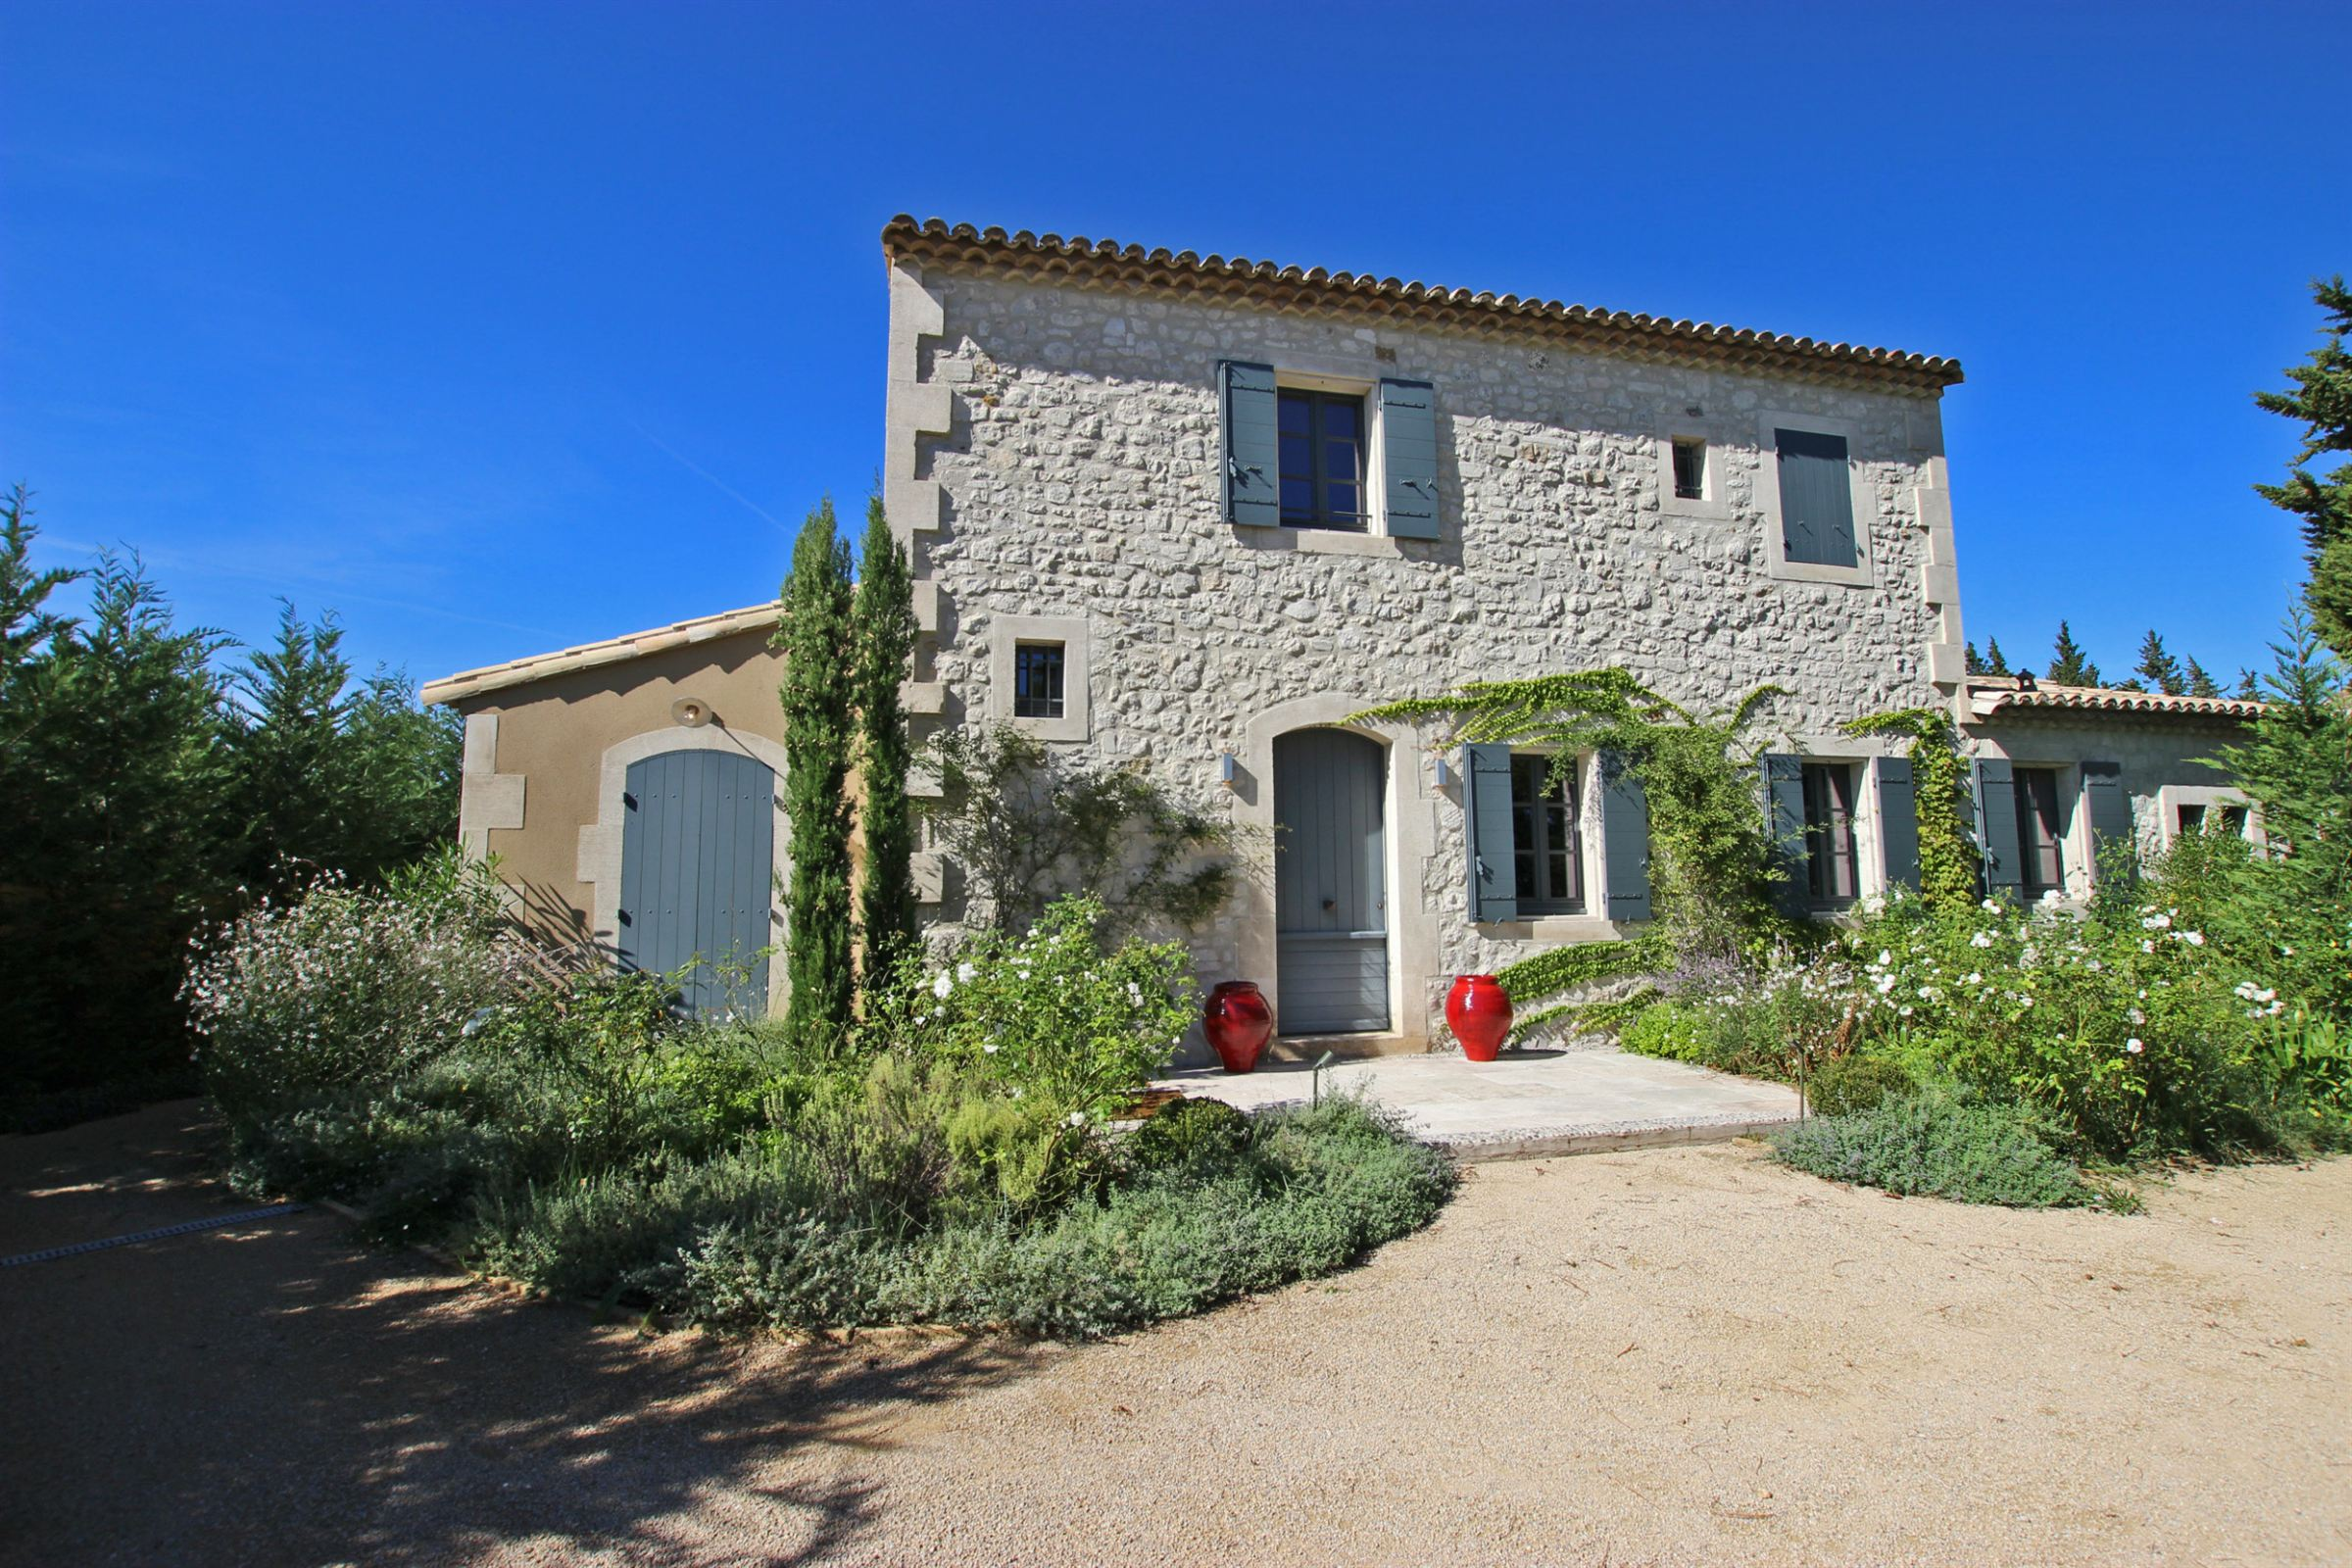 rentals property at Charming renovated townhouse with swimming pool in Provence